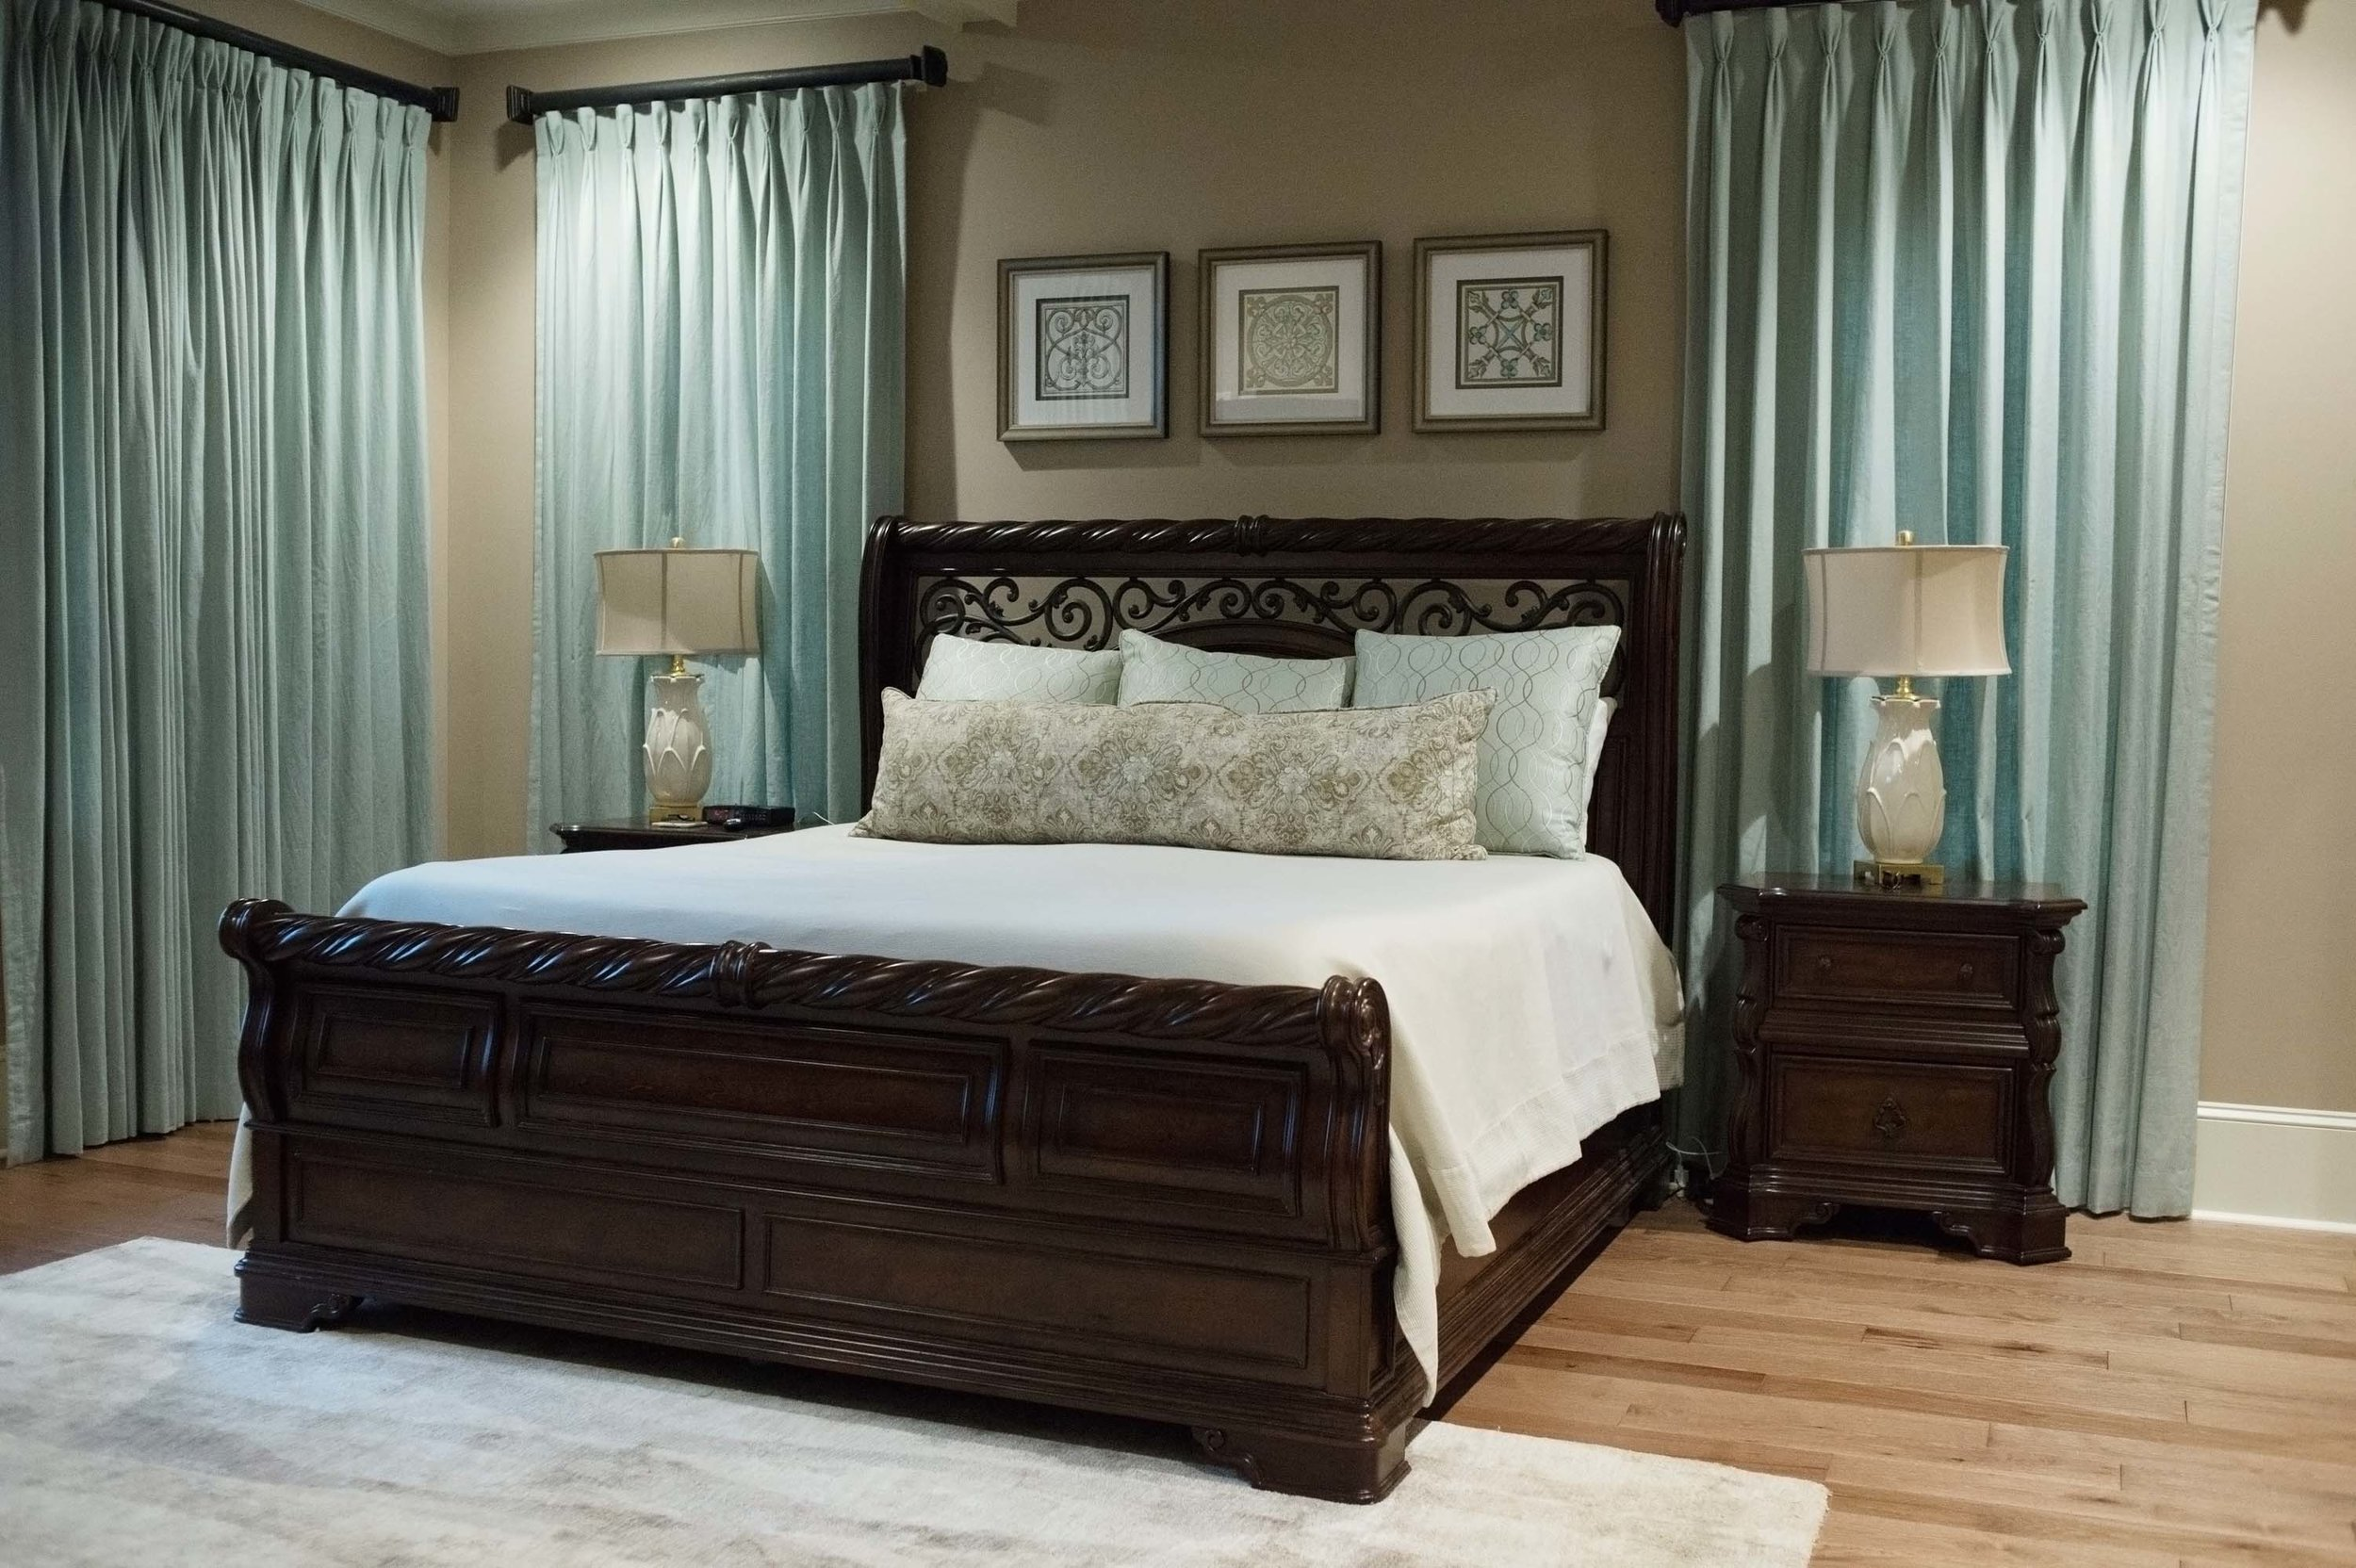 Bedroom with wooden bed, wooden bedside tables, table lamps and a hardwood floor